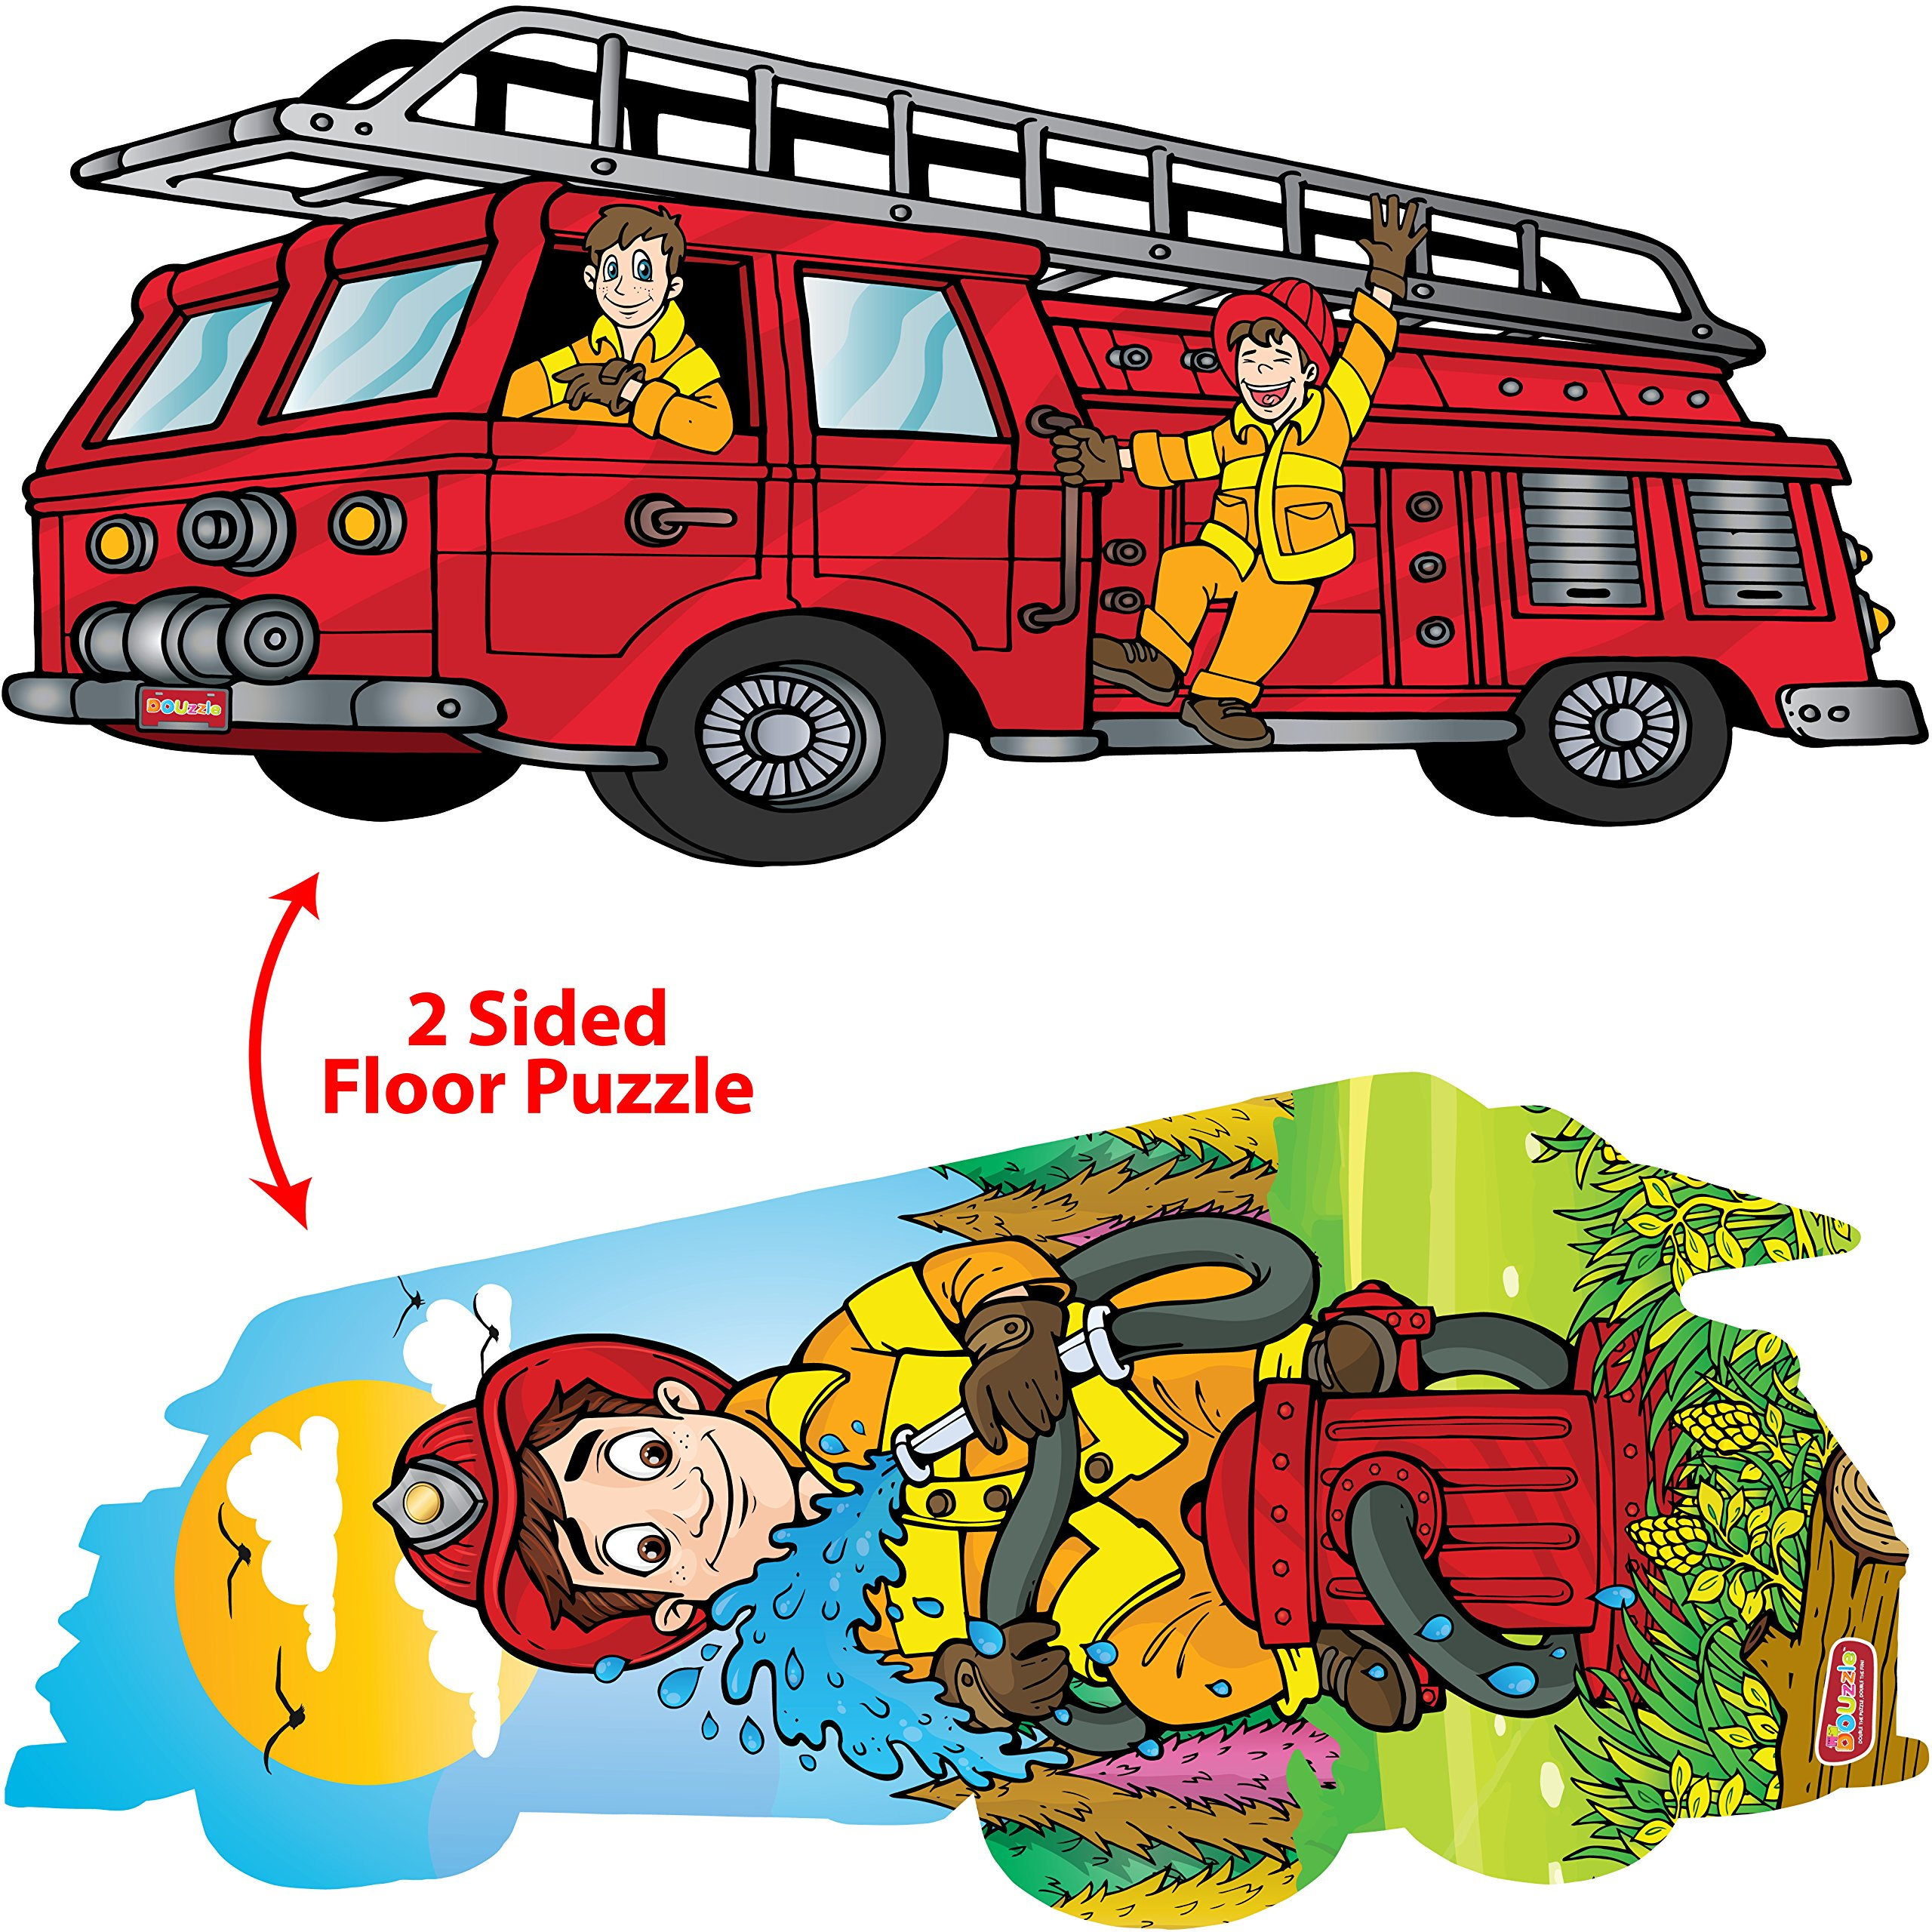 DOUzzle Big Red Fire Engine, Double Sided Jigsaw Floor Puzzles, for Toddlers and Kids Ages 3 4 5 Years Old (24 extra large pcs, 3 feet long). Side 1: Jumbo Firetruck - Side 2: Firefighter